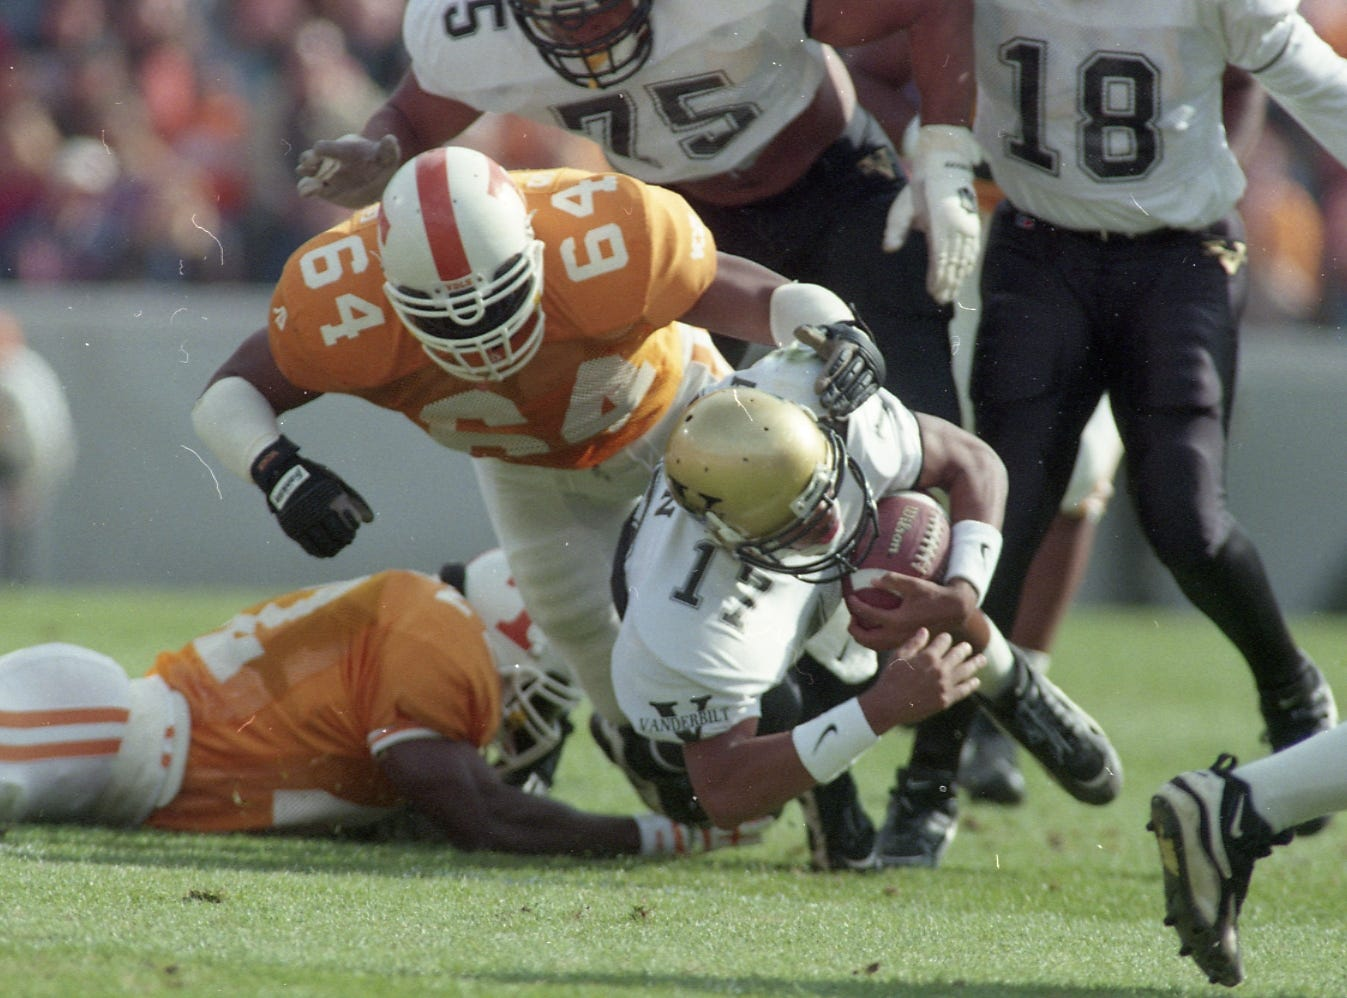 Vanderbilt's quarterback Damian Allen gets sacked by Tennessee's Steve White on November 25, 1995.